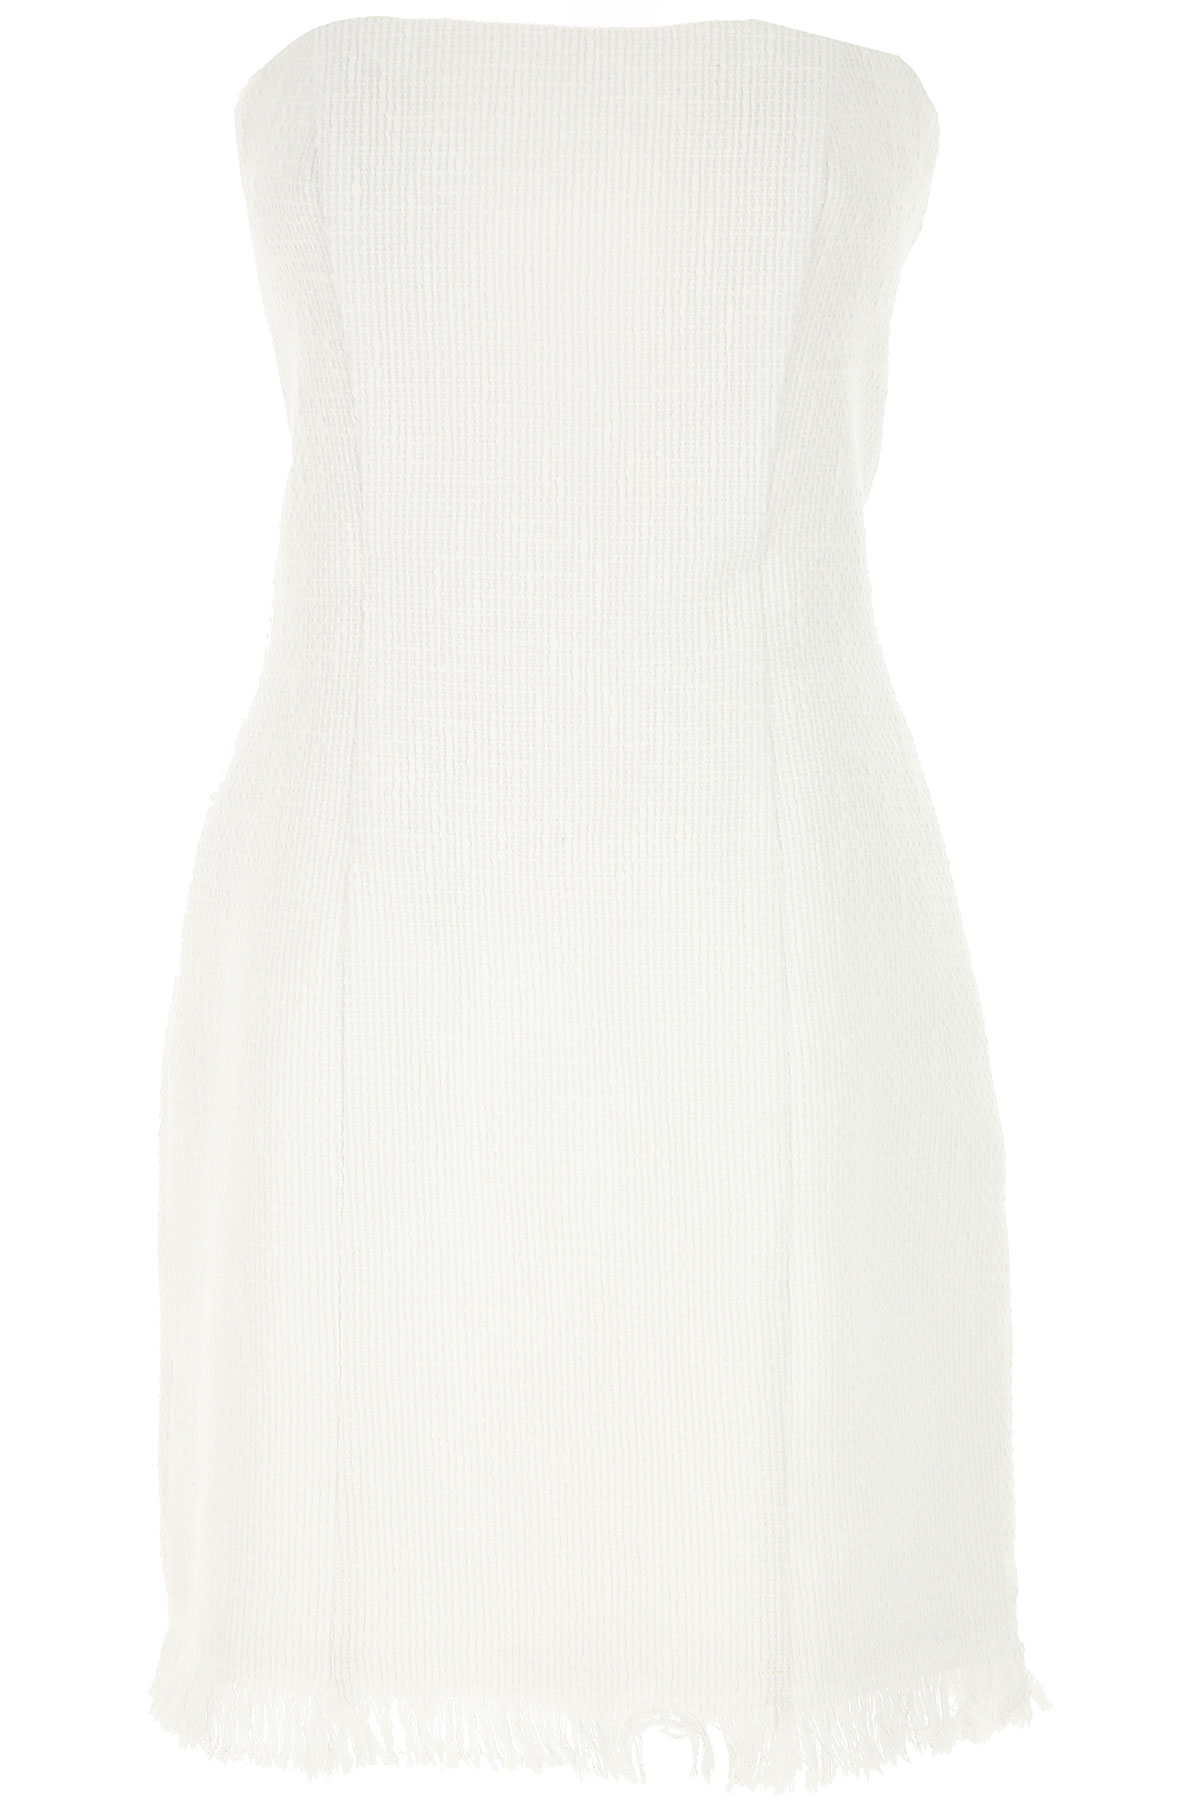 Federica Tosi Dress for Women, Evening Cocktail Party On Sale, White, Cotton, 2019, 2 4 6